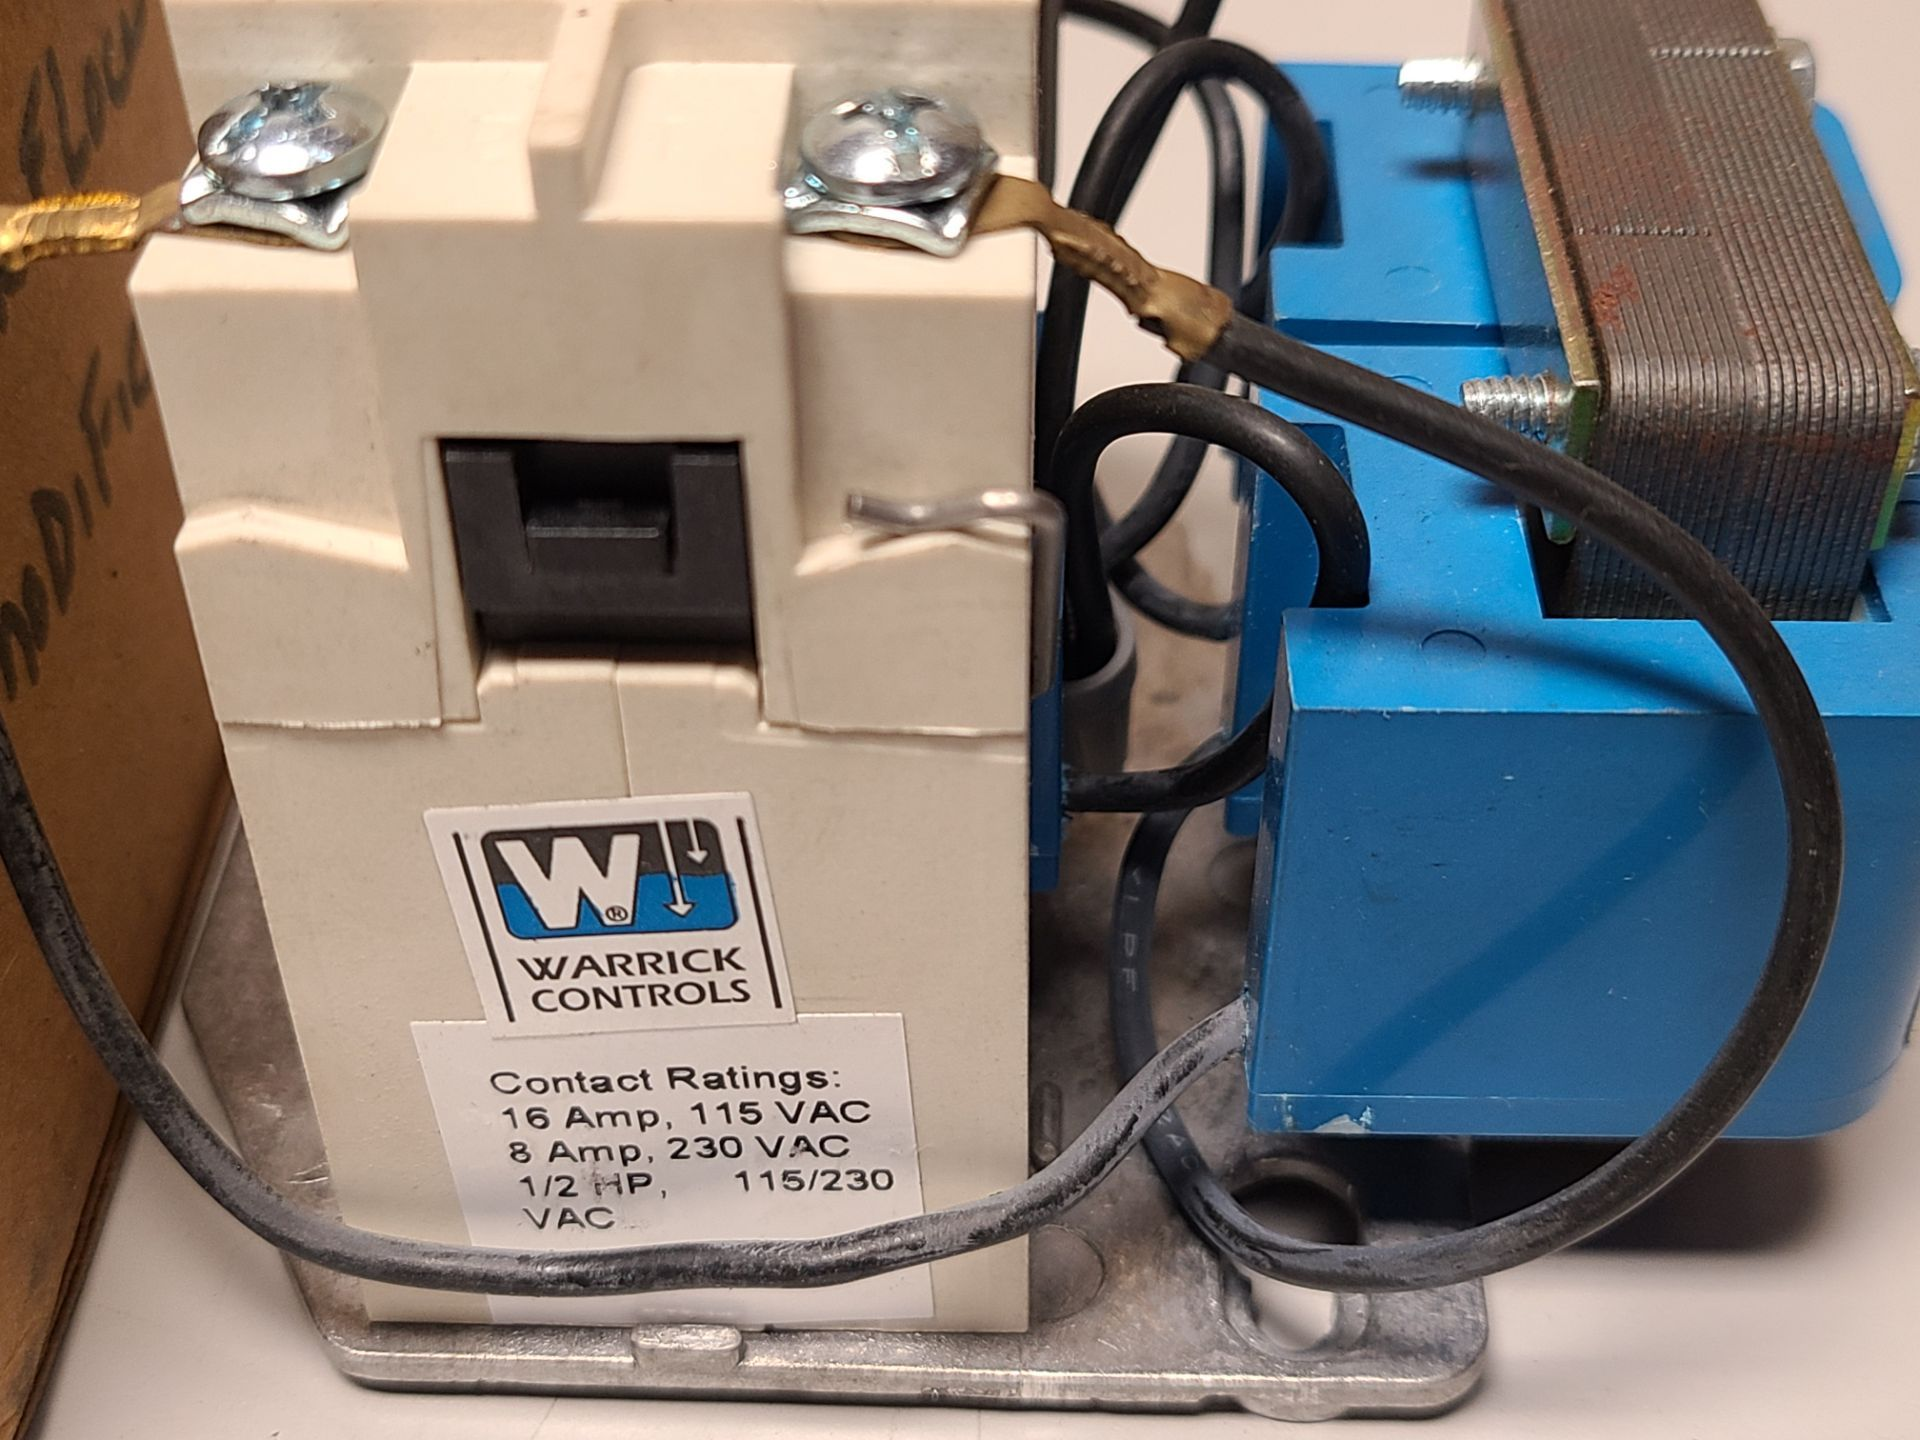 NEW WARRICK/GEMS CONTROL RELAY - Image 2 of 5